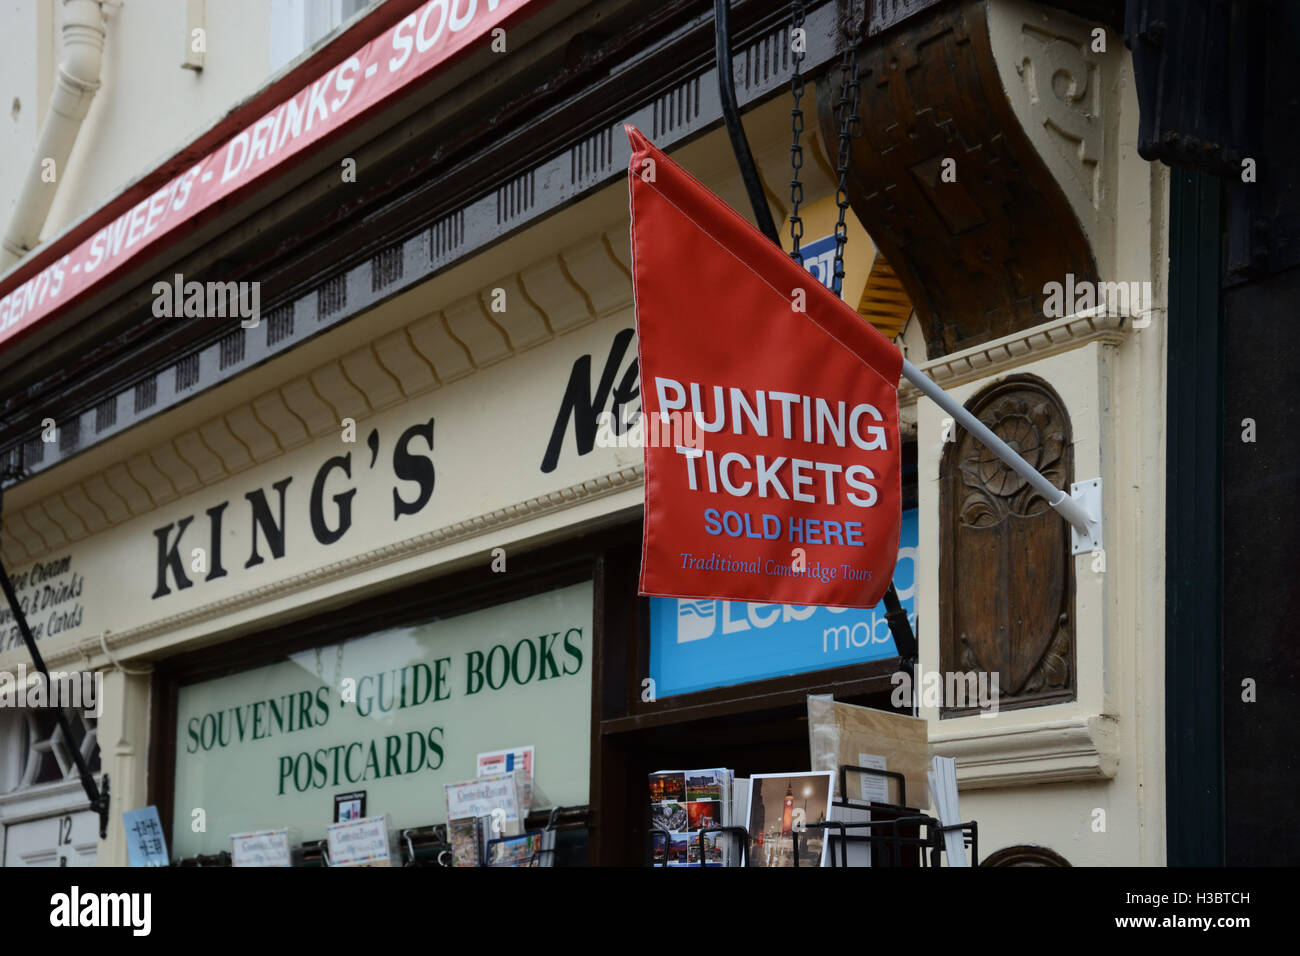 Sign for Punting tickets, on Kings Parade, Cambridge. England. - Stock Image